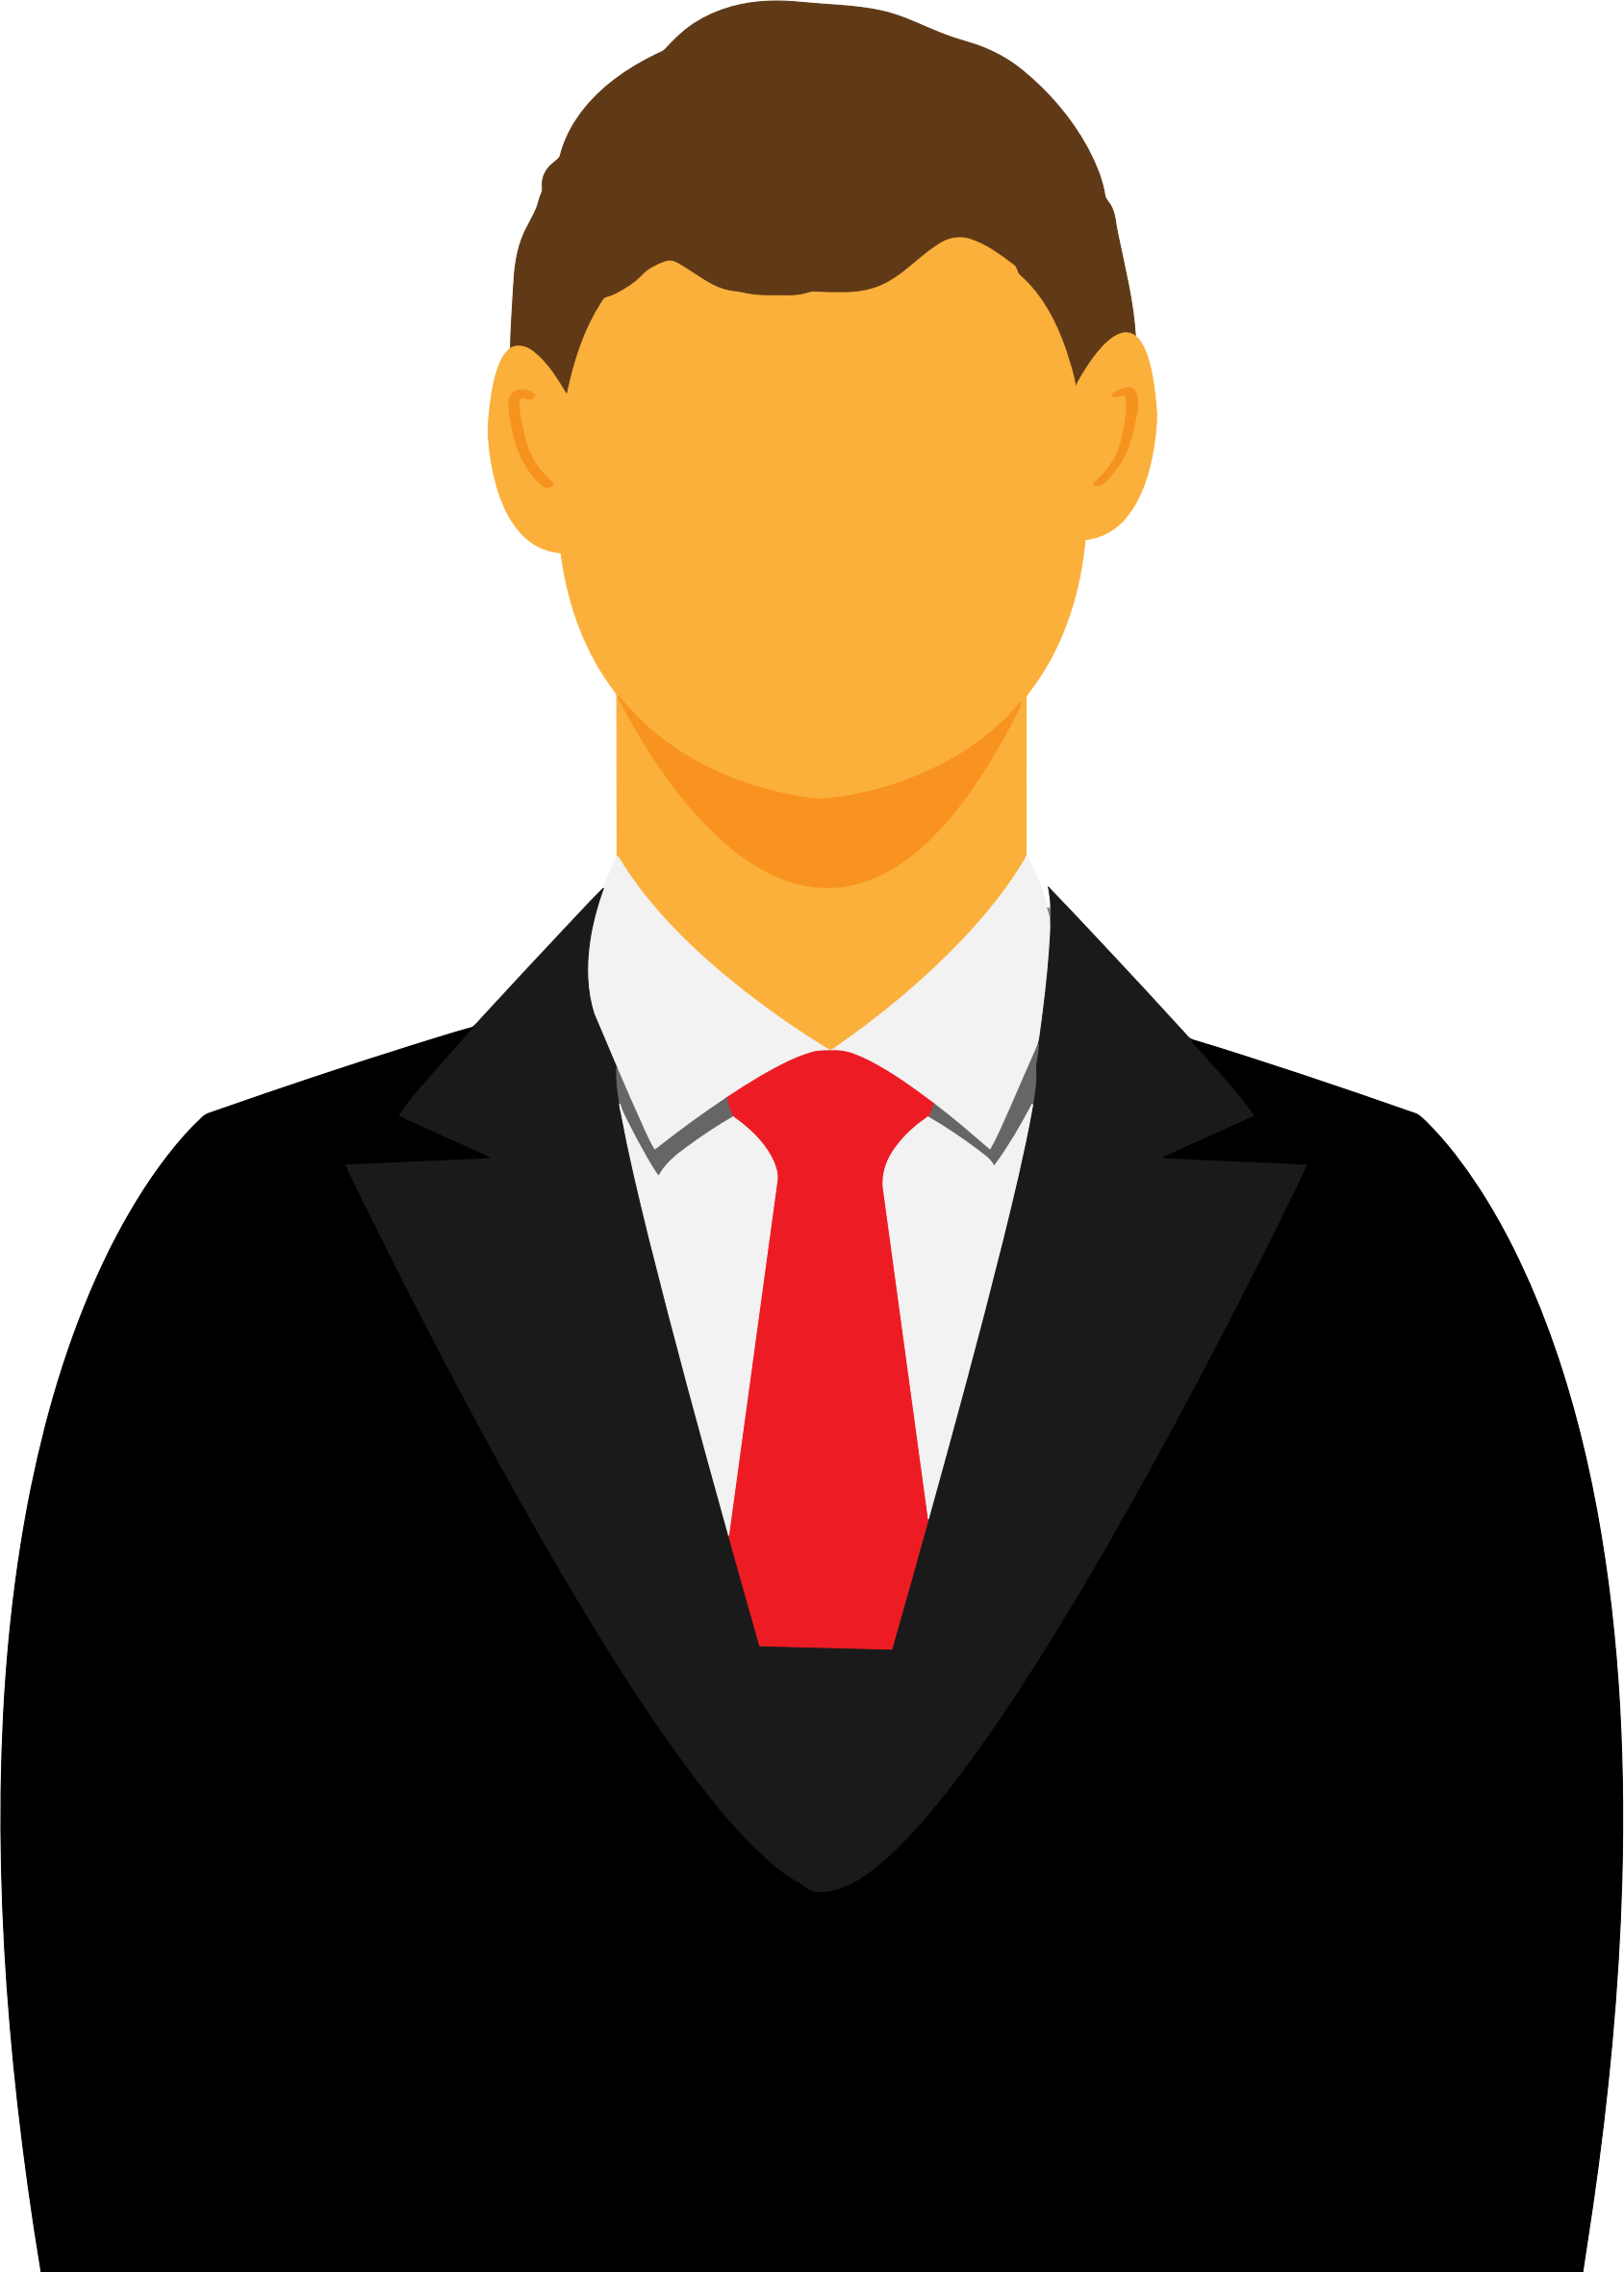 Man in suit cartoon png. Faceless avatar icons free